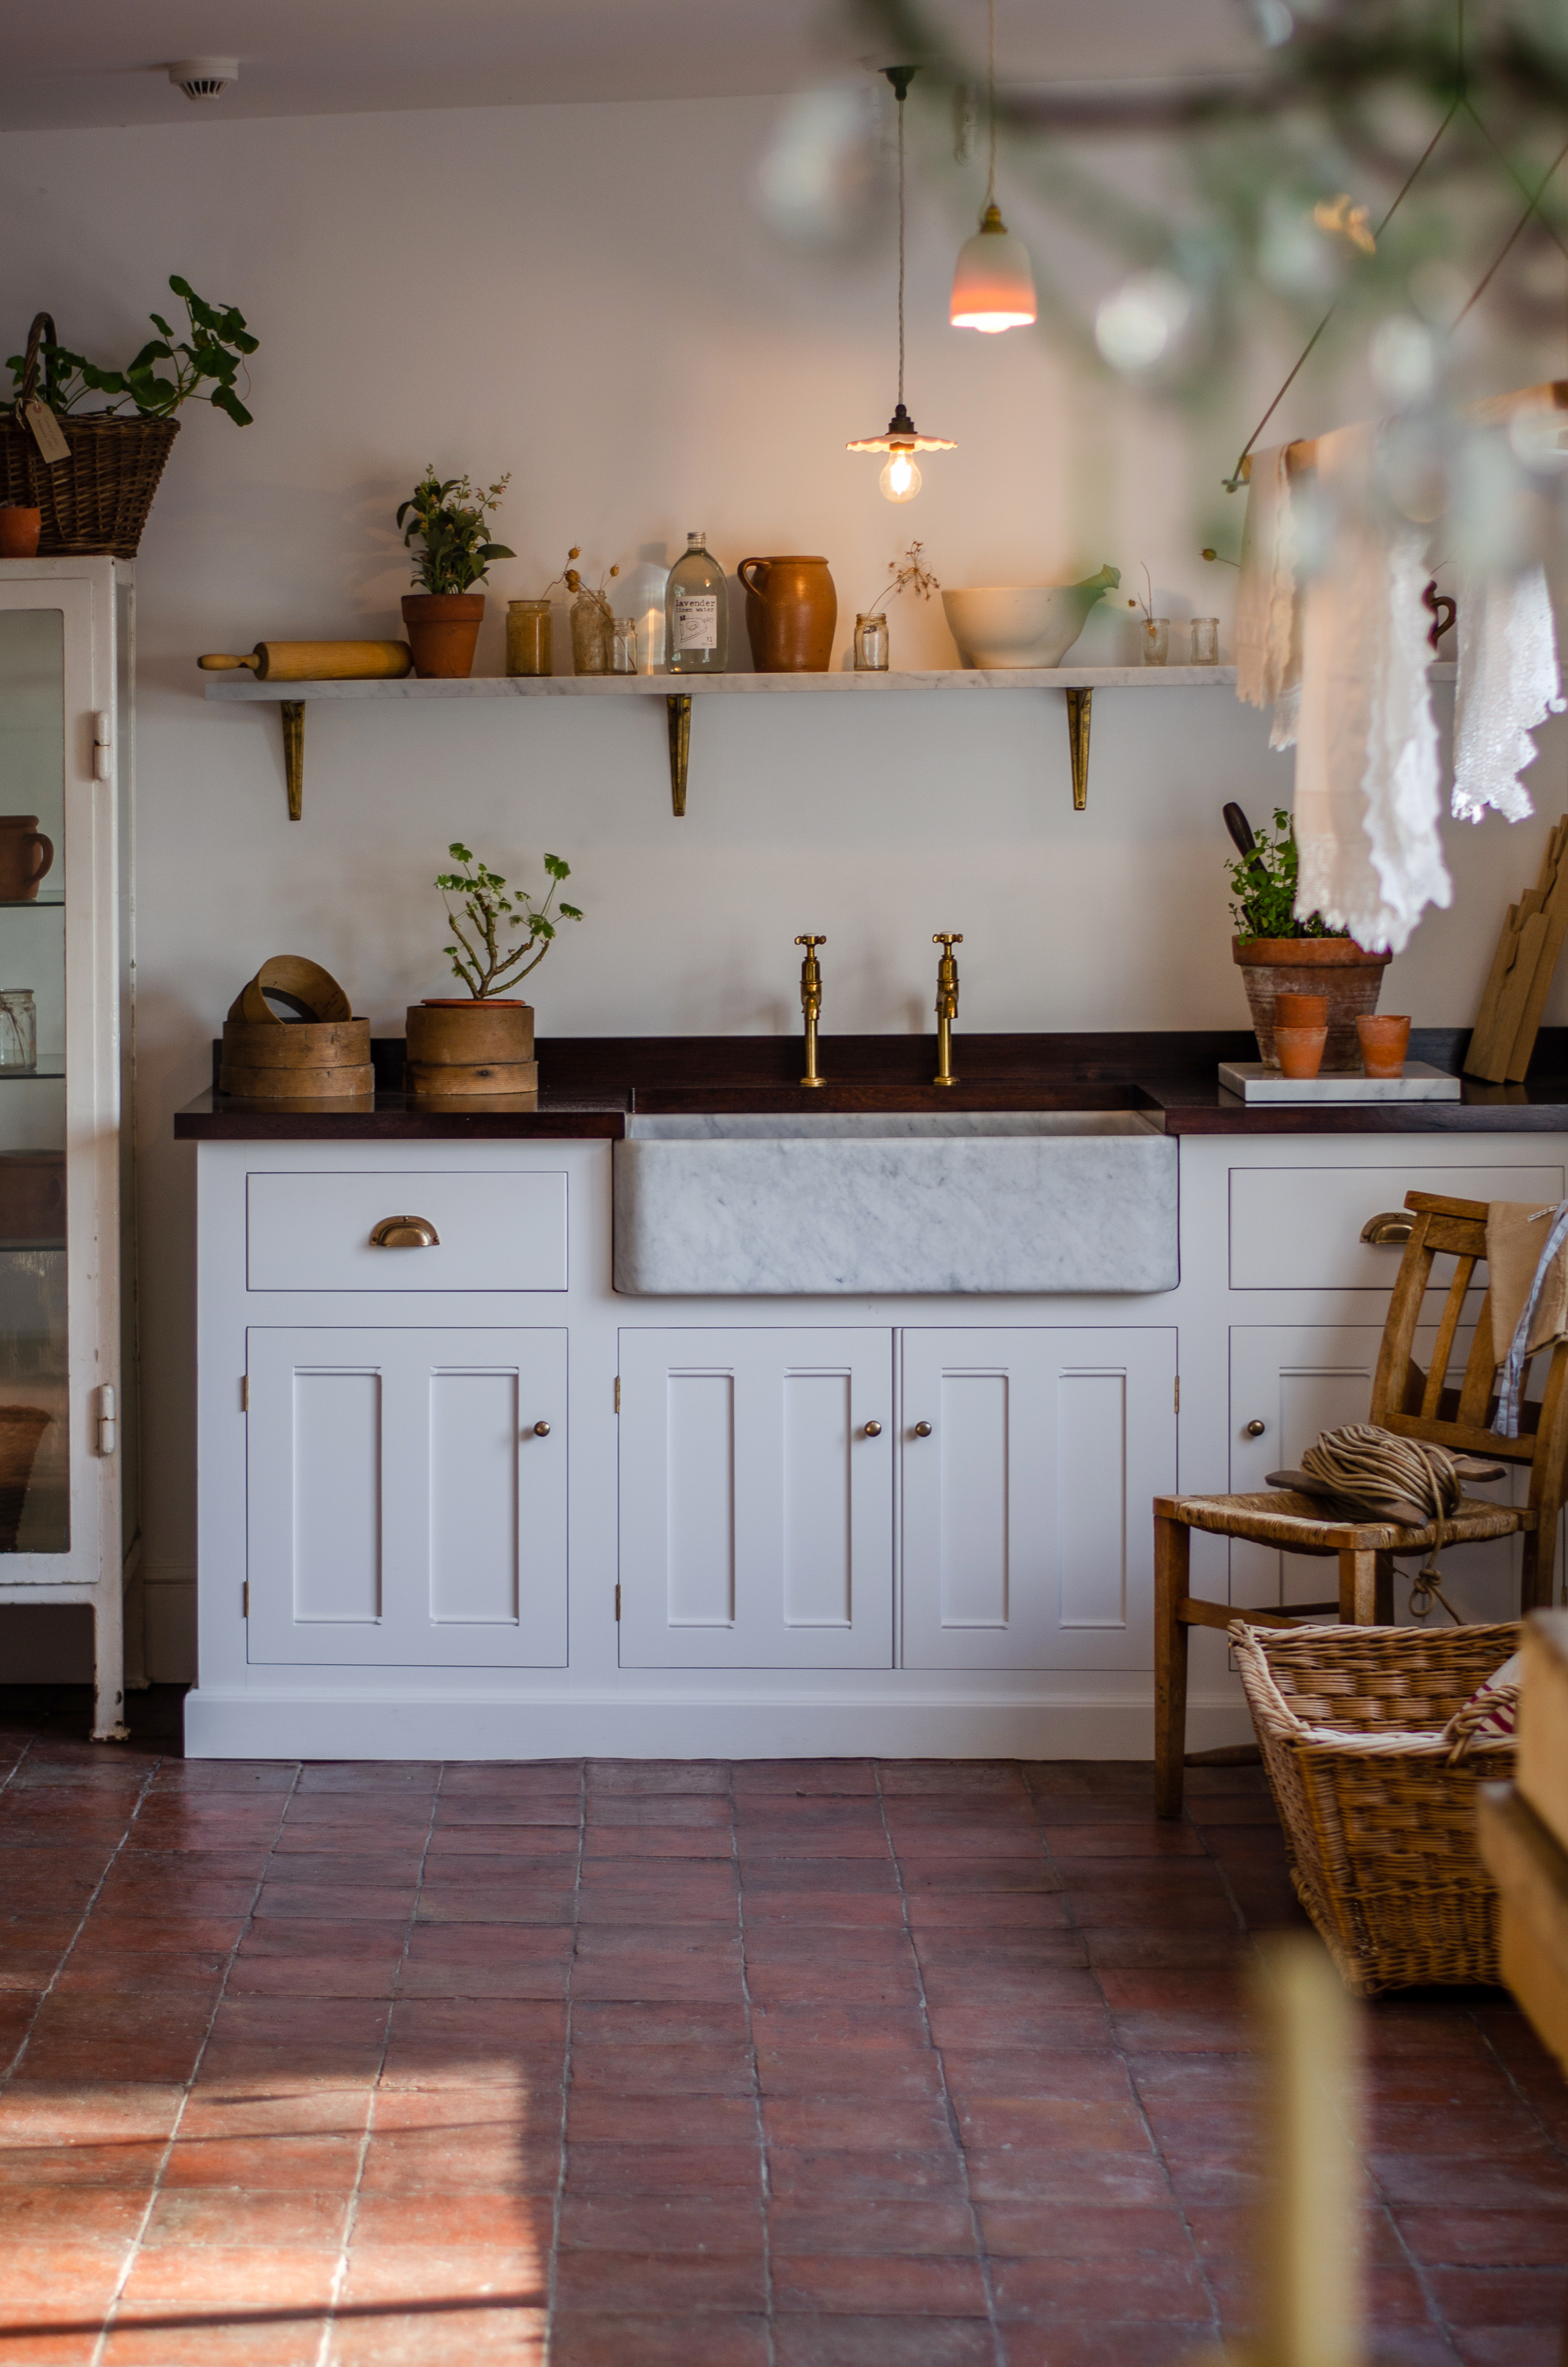 Our grand Classic Millhouse Scullery Kitchen accentuated with plenty of greenery.